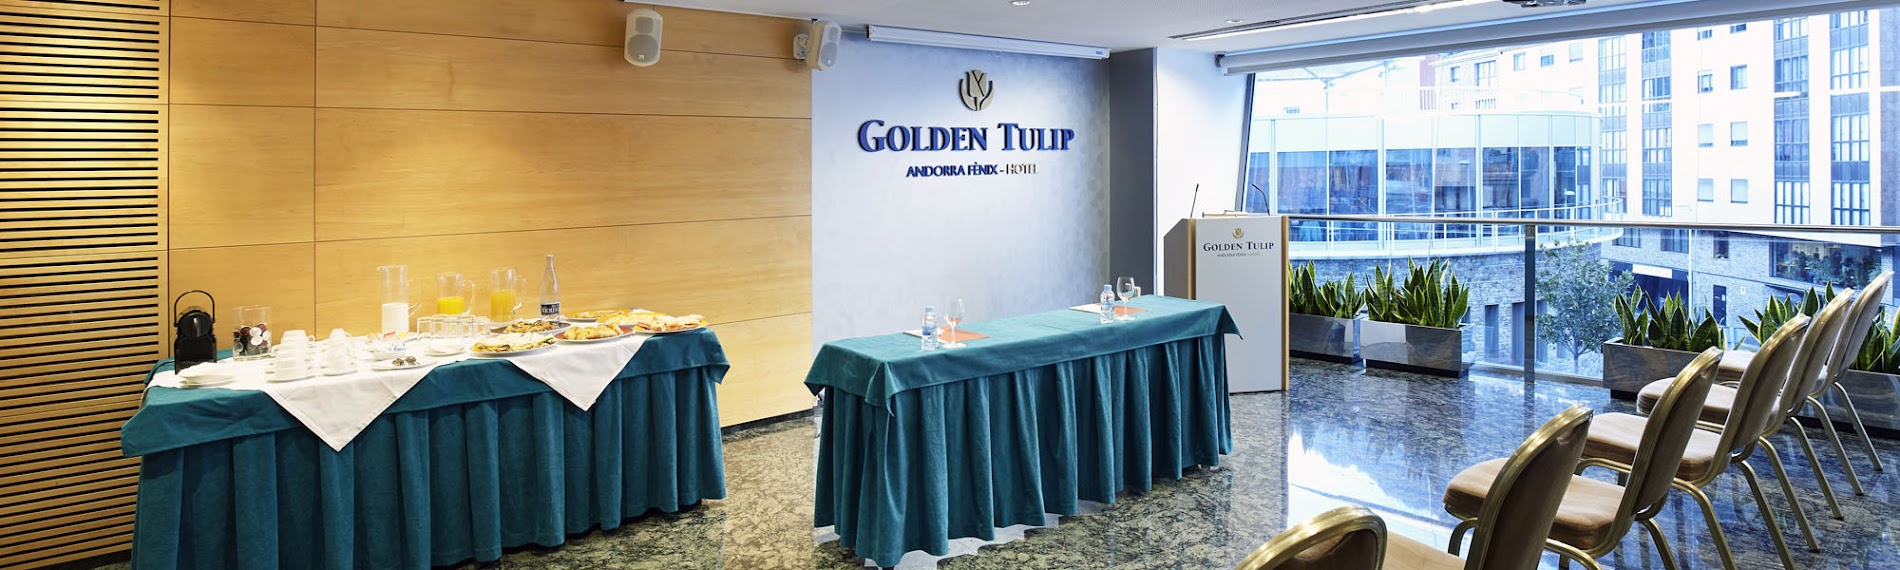 Events and company meetings - Andorra